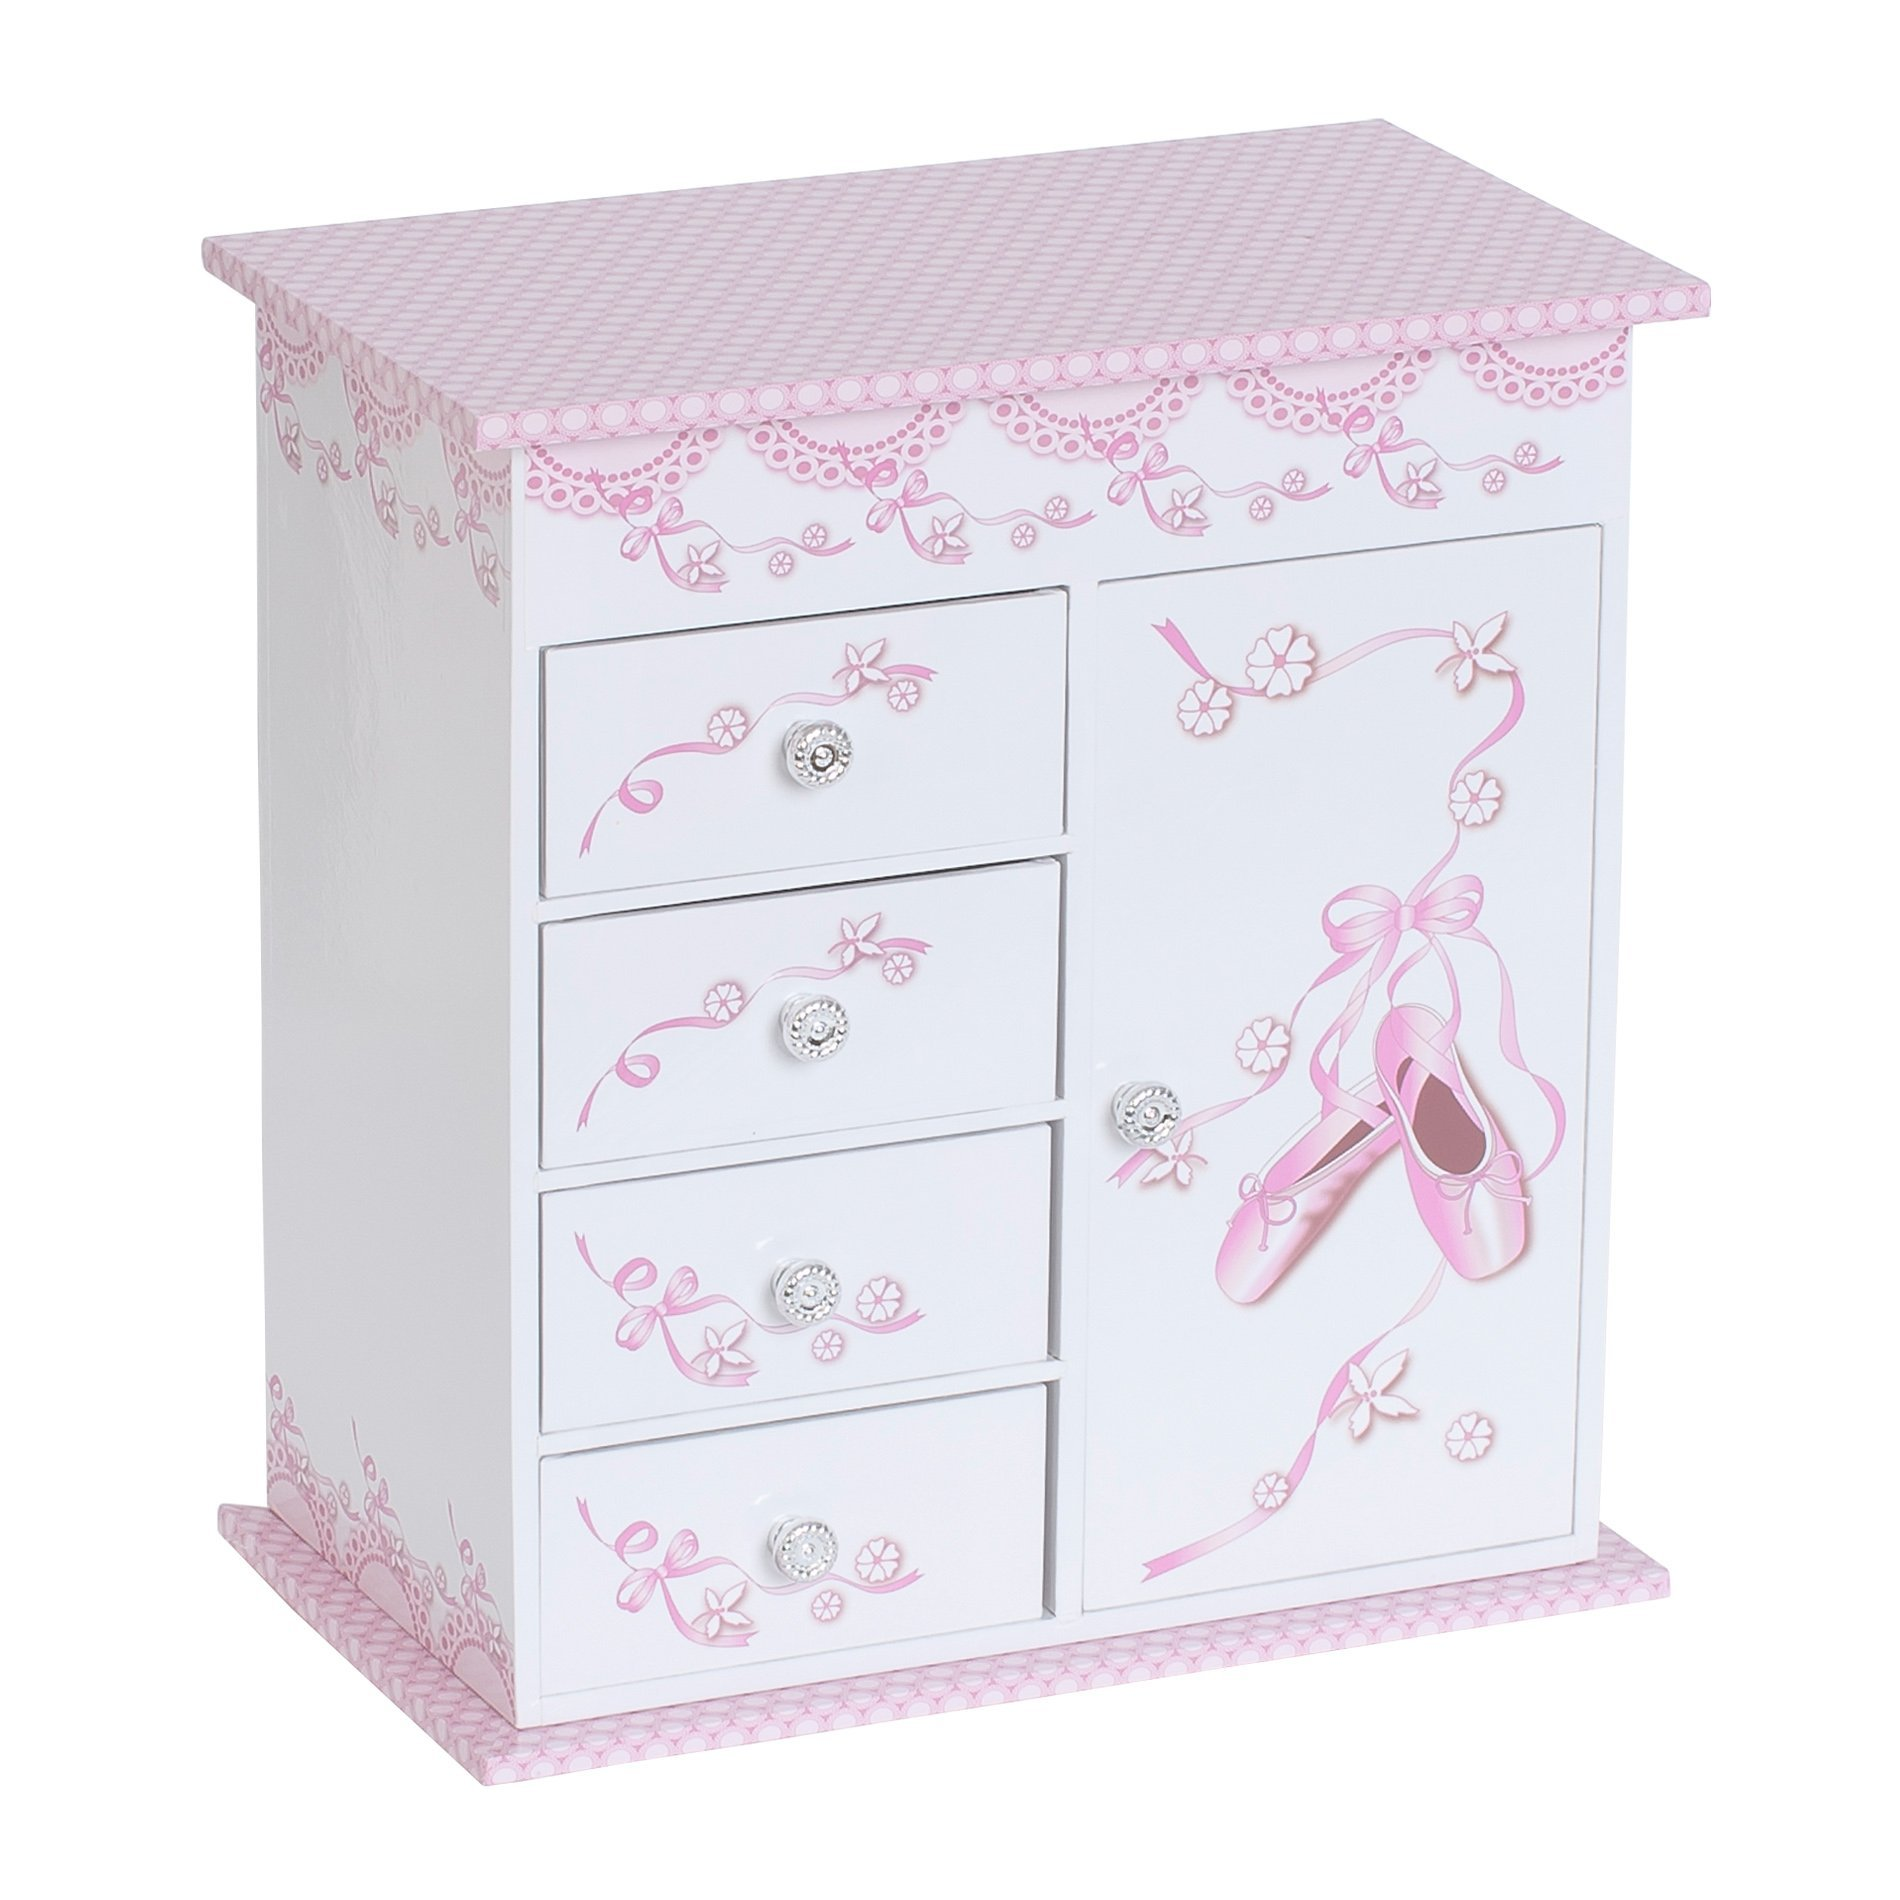 Mele & Co. Cristiana Girl's Musical Ballerina Jewelry Box (Ballet Slipper and Ribbon Design)